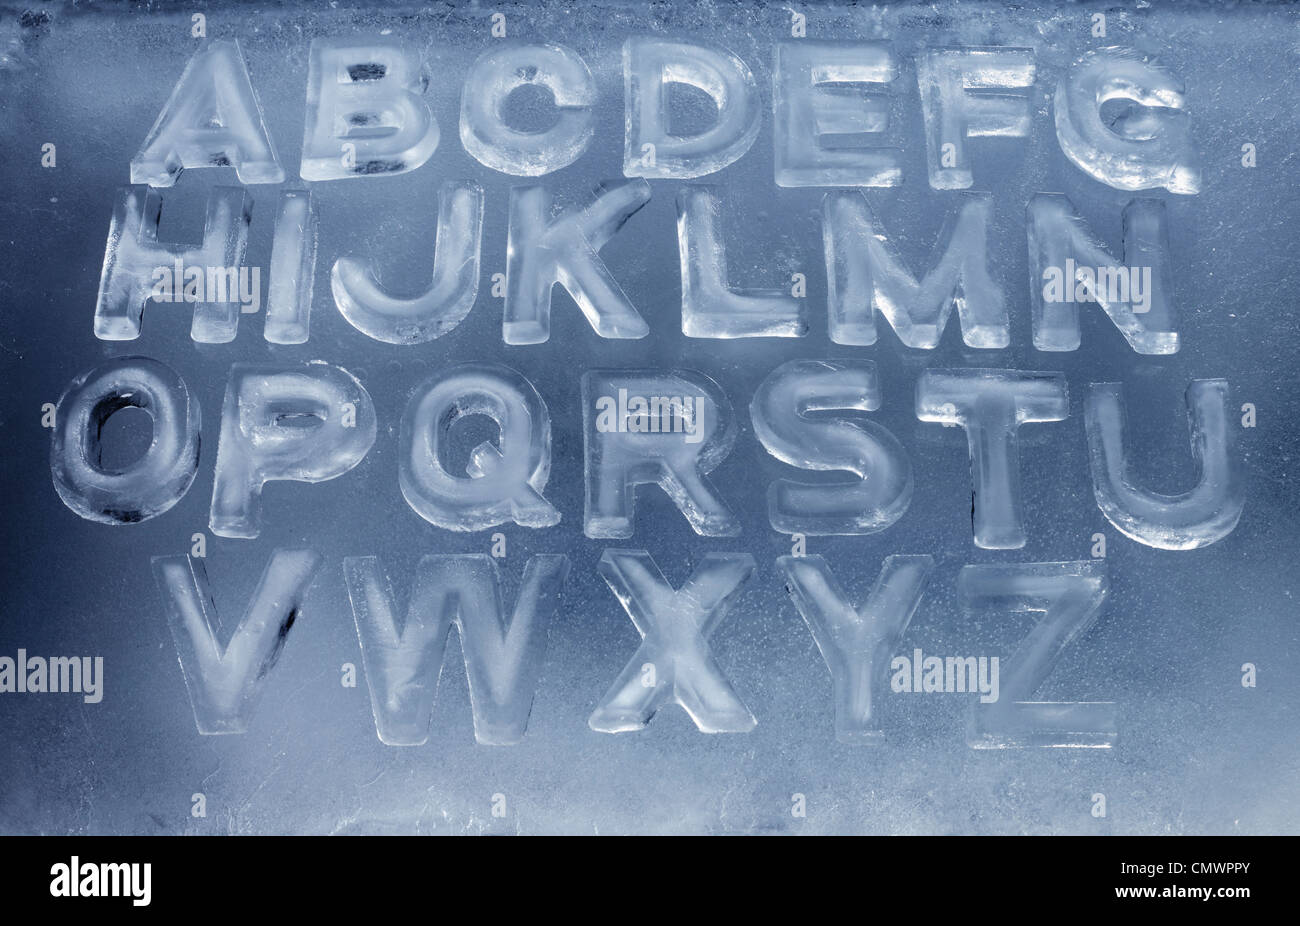 Alphabet made of real ice letters. - Stock Image